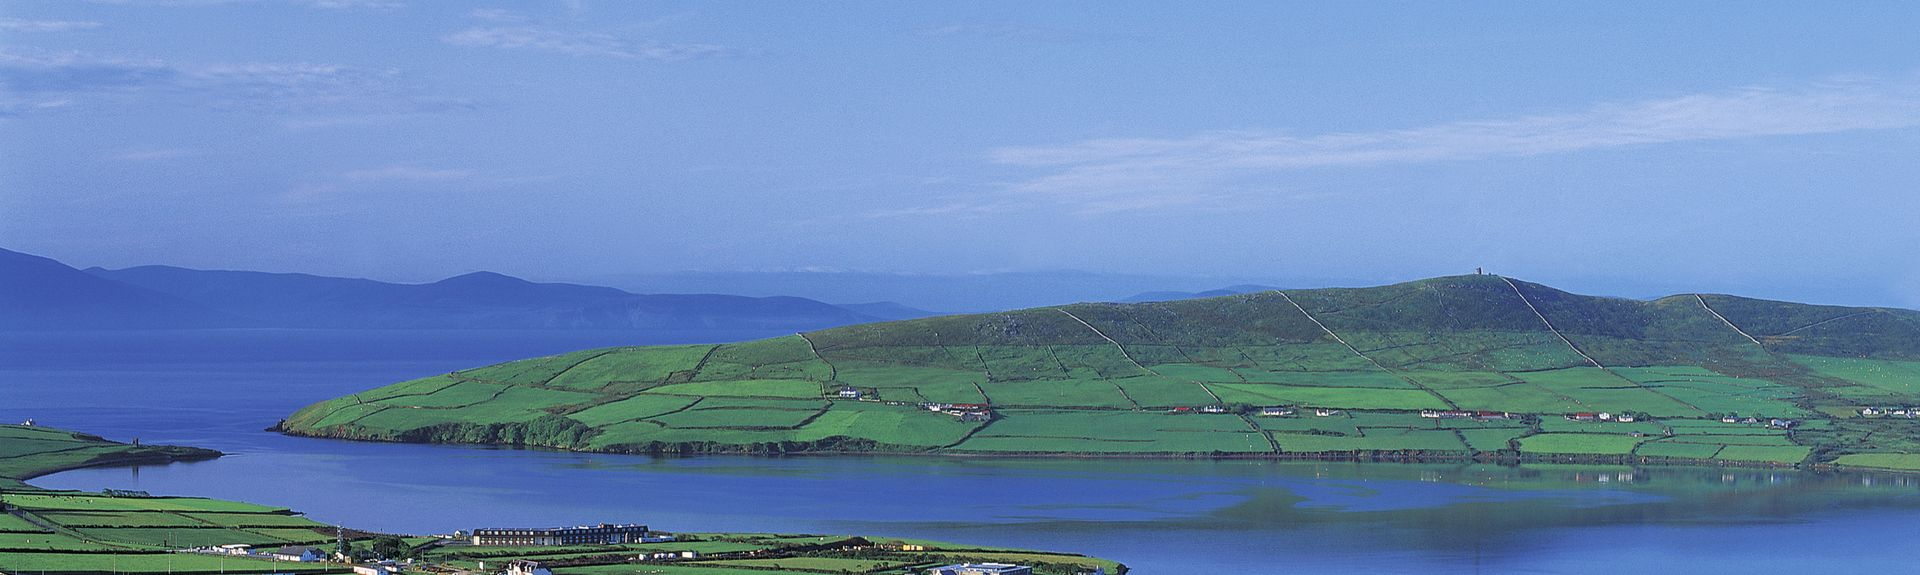 Dingle Peninsula, Kerry (contea), Irlanda